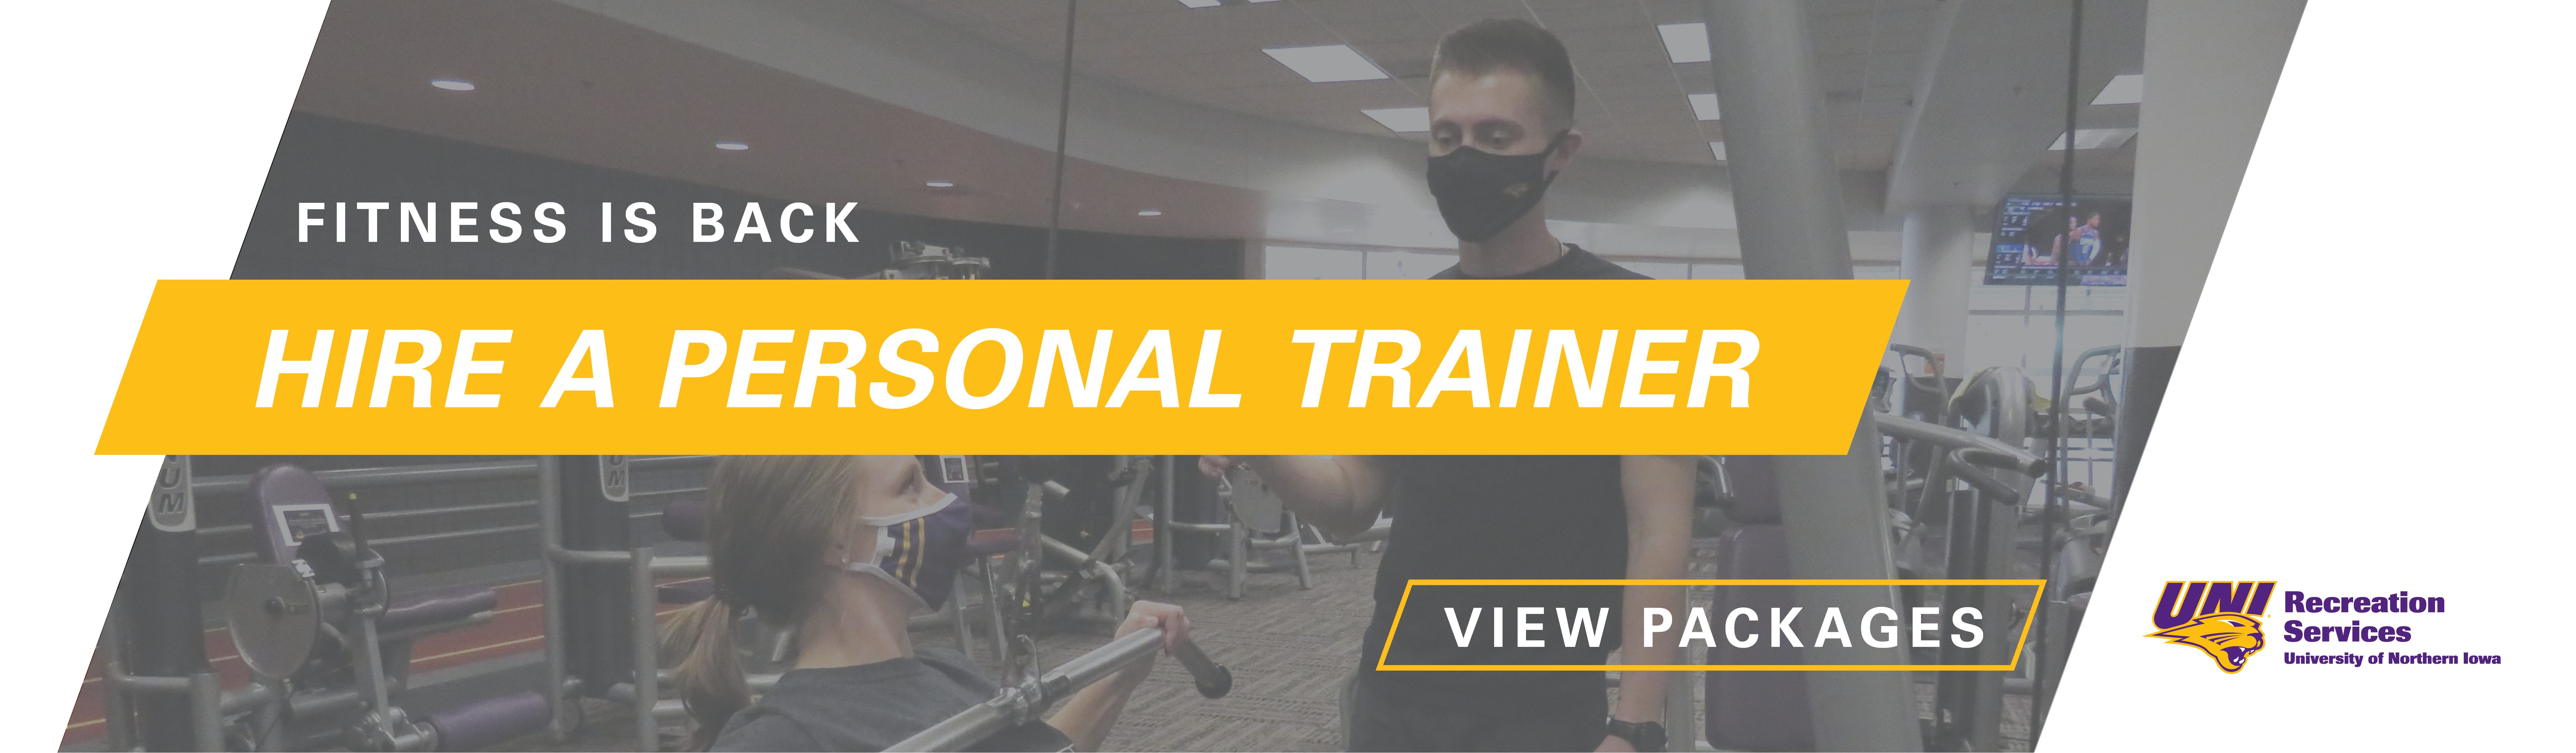 Hire a Personal Trainer Flexslider